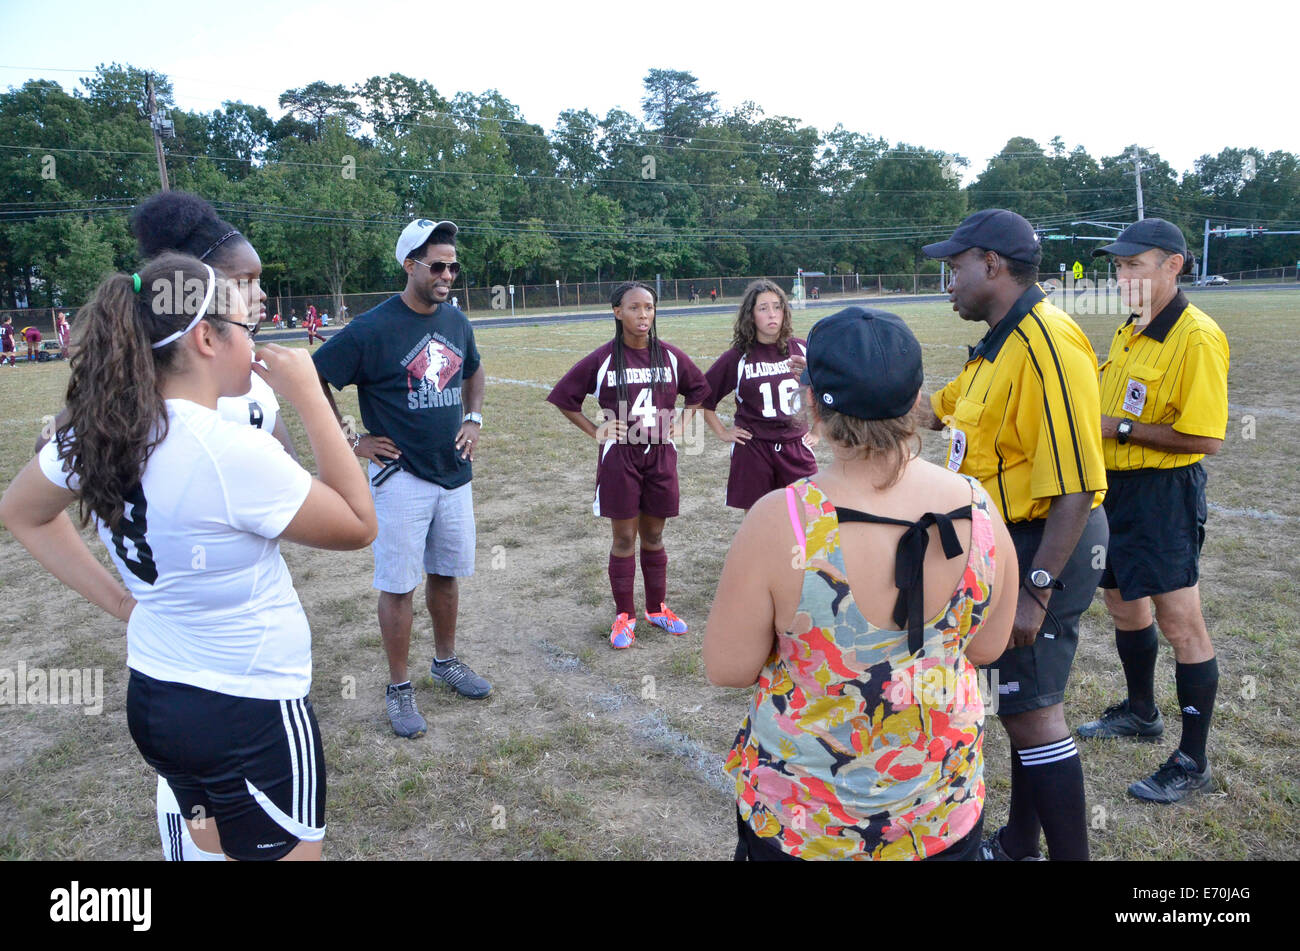 Soccer teams and coaches meet with referees prior to the beginning of a high school soccer game - Stock Image